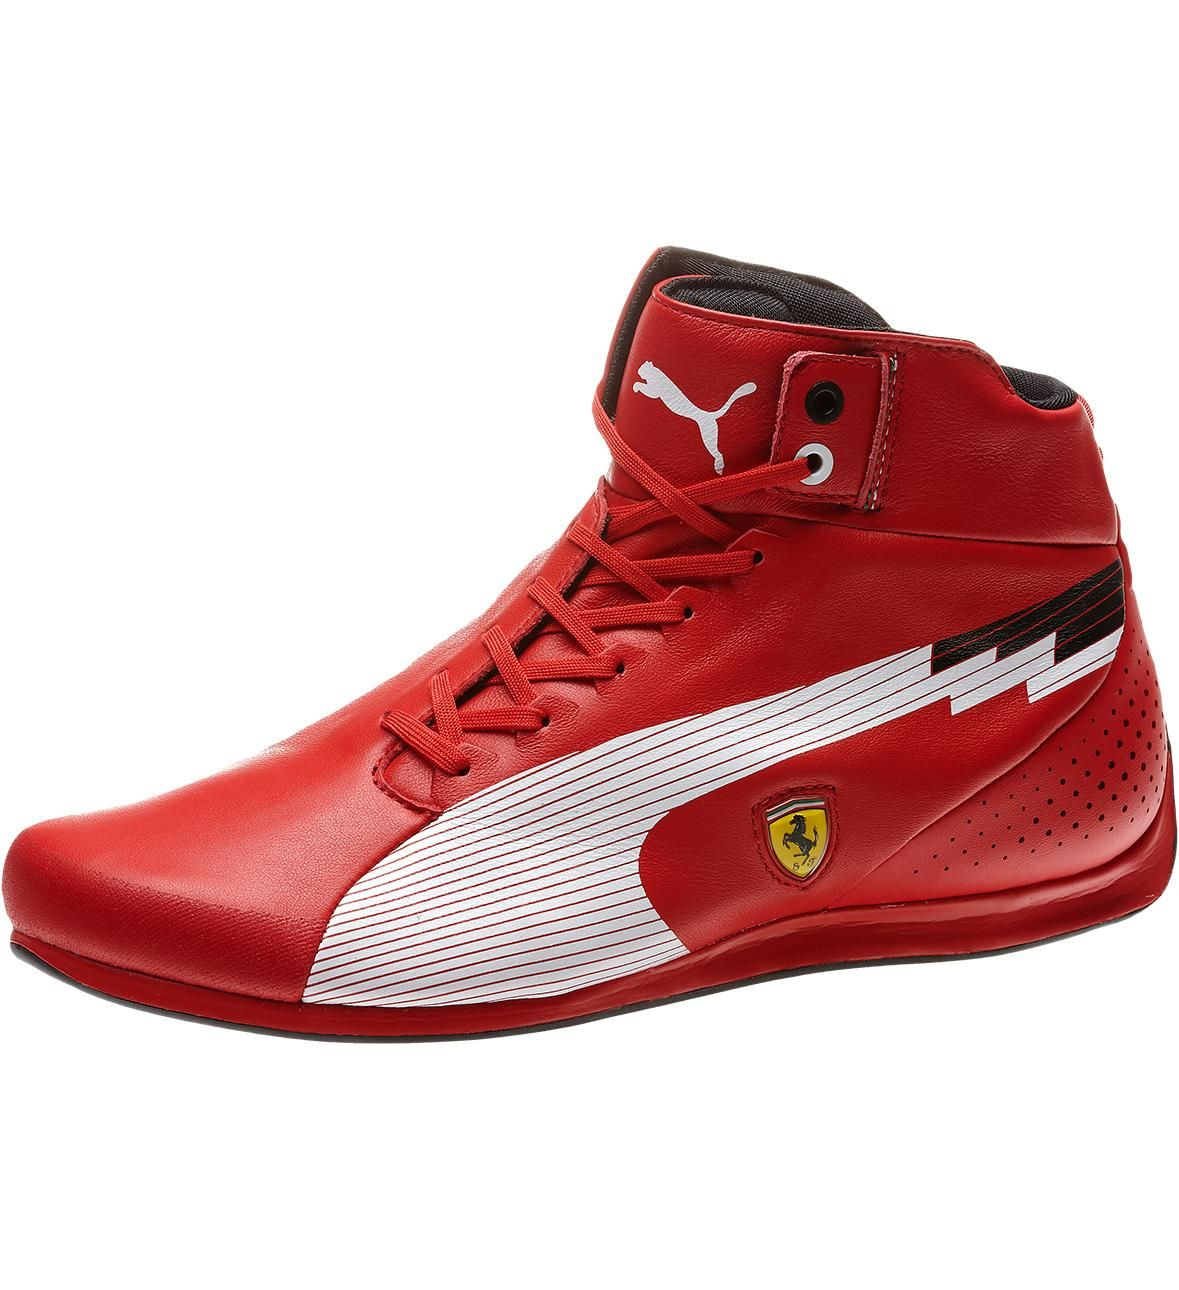 PUMA Ferrari evoSPEED Mid Shoes.  130.00   Puma Shoes   Pumas shoes ... 610536086d